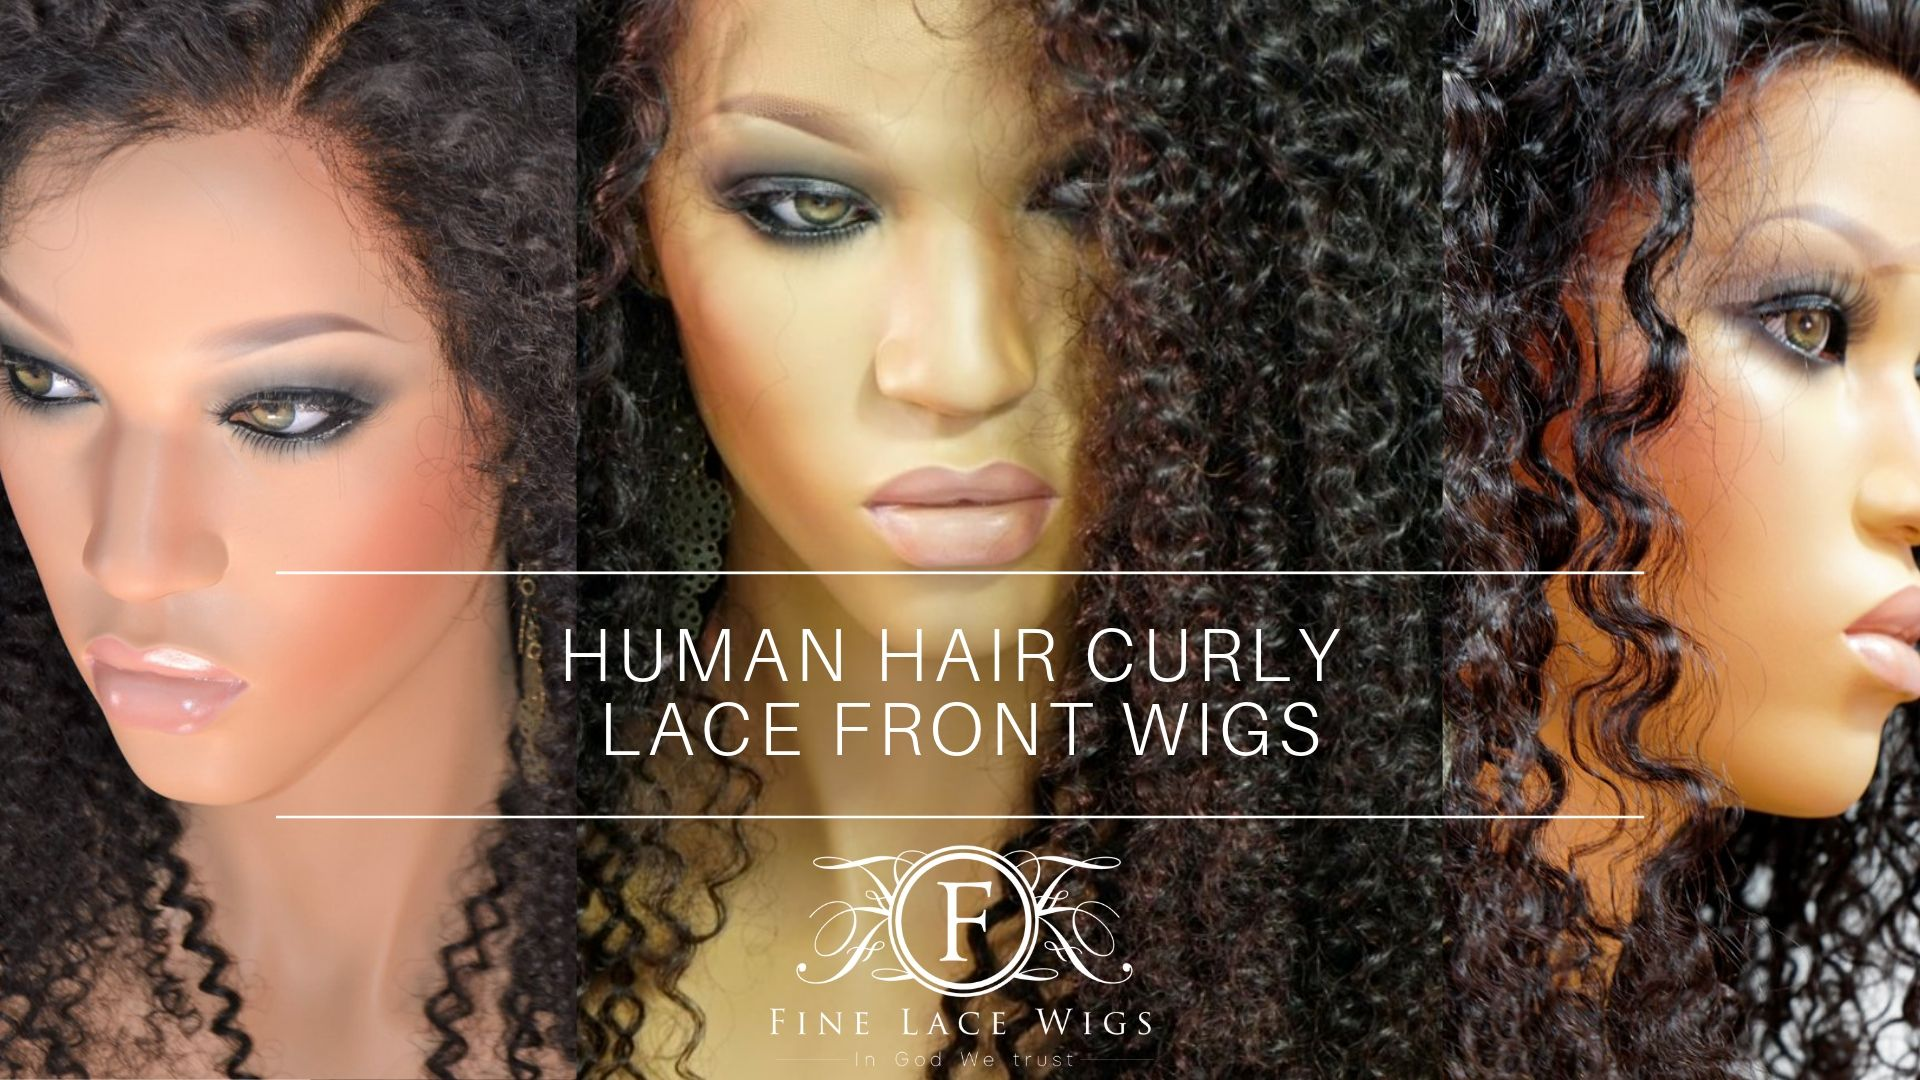 Human Hair Curly Lace Front Wigs.jpg